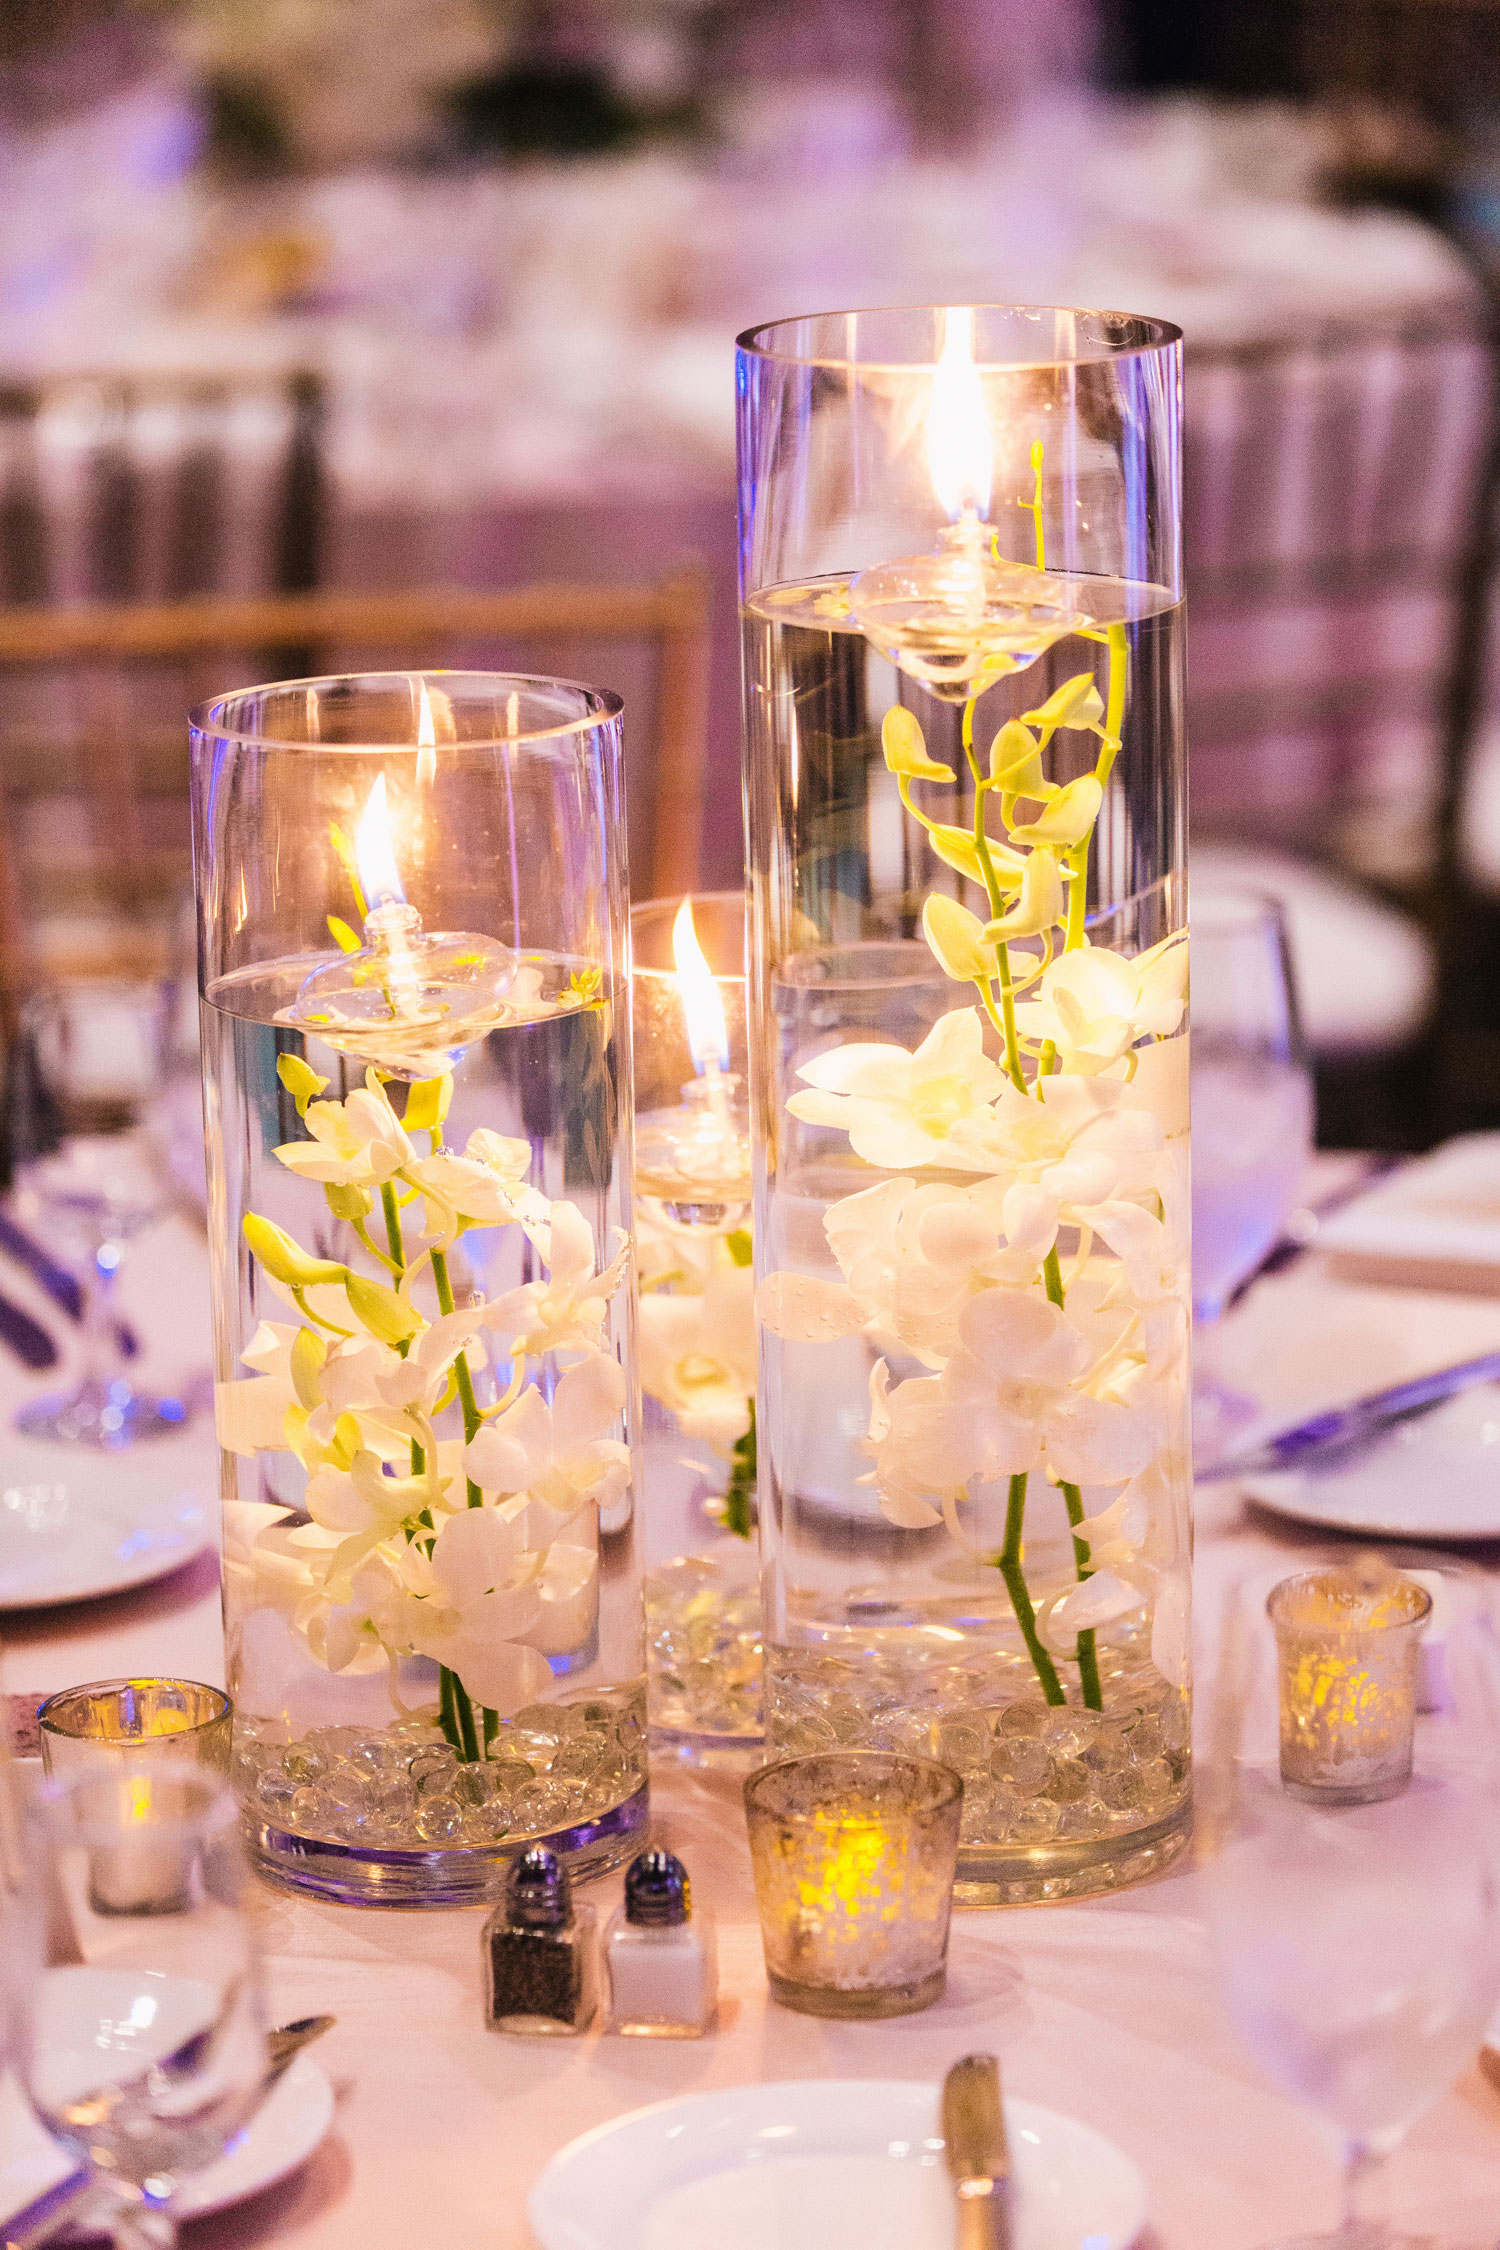 Small candles and votives for your wedding reception décor